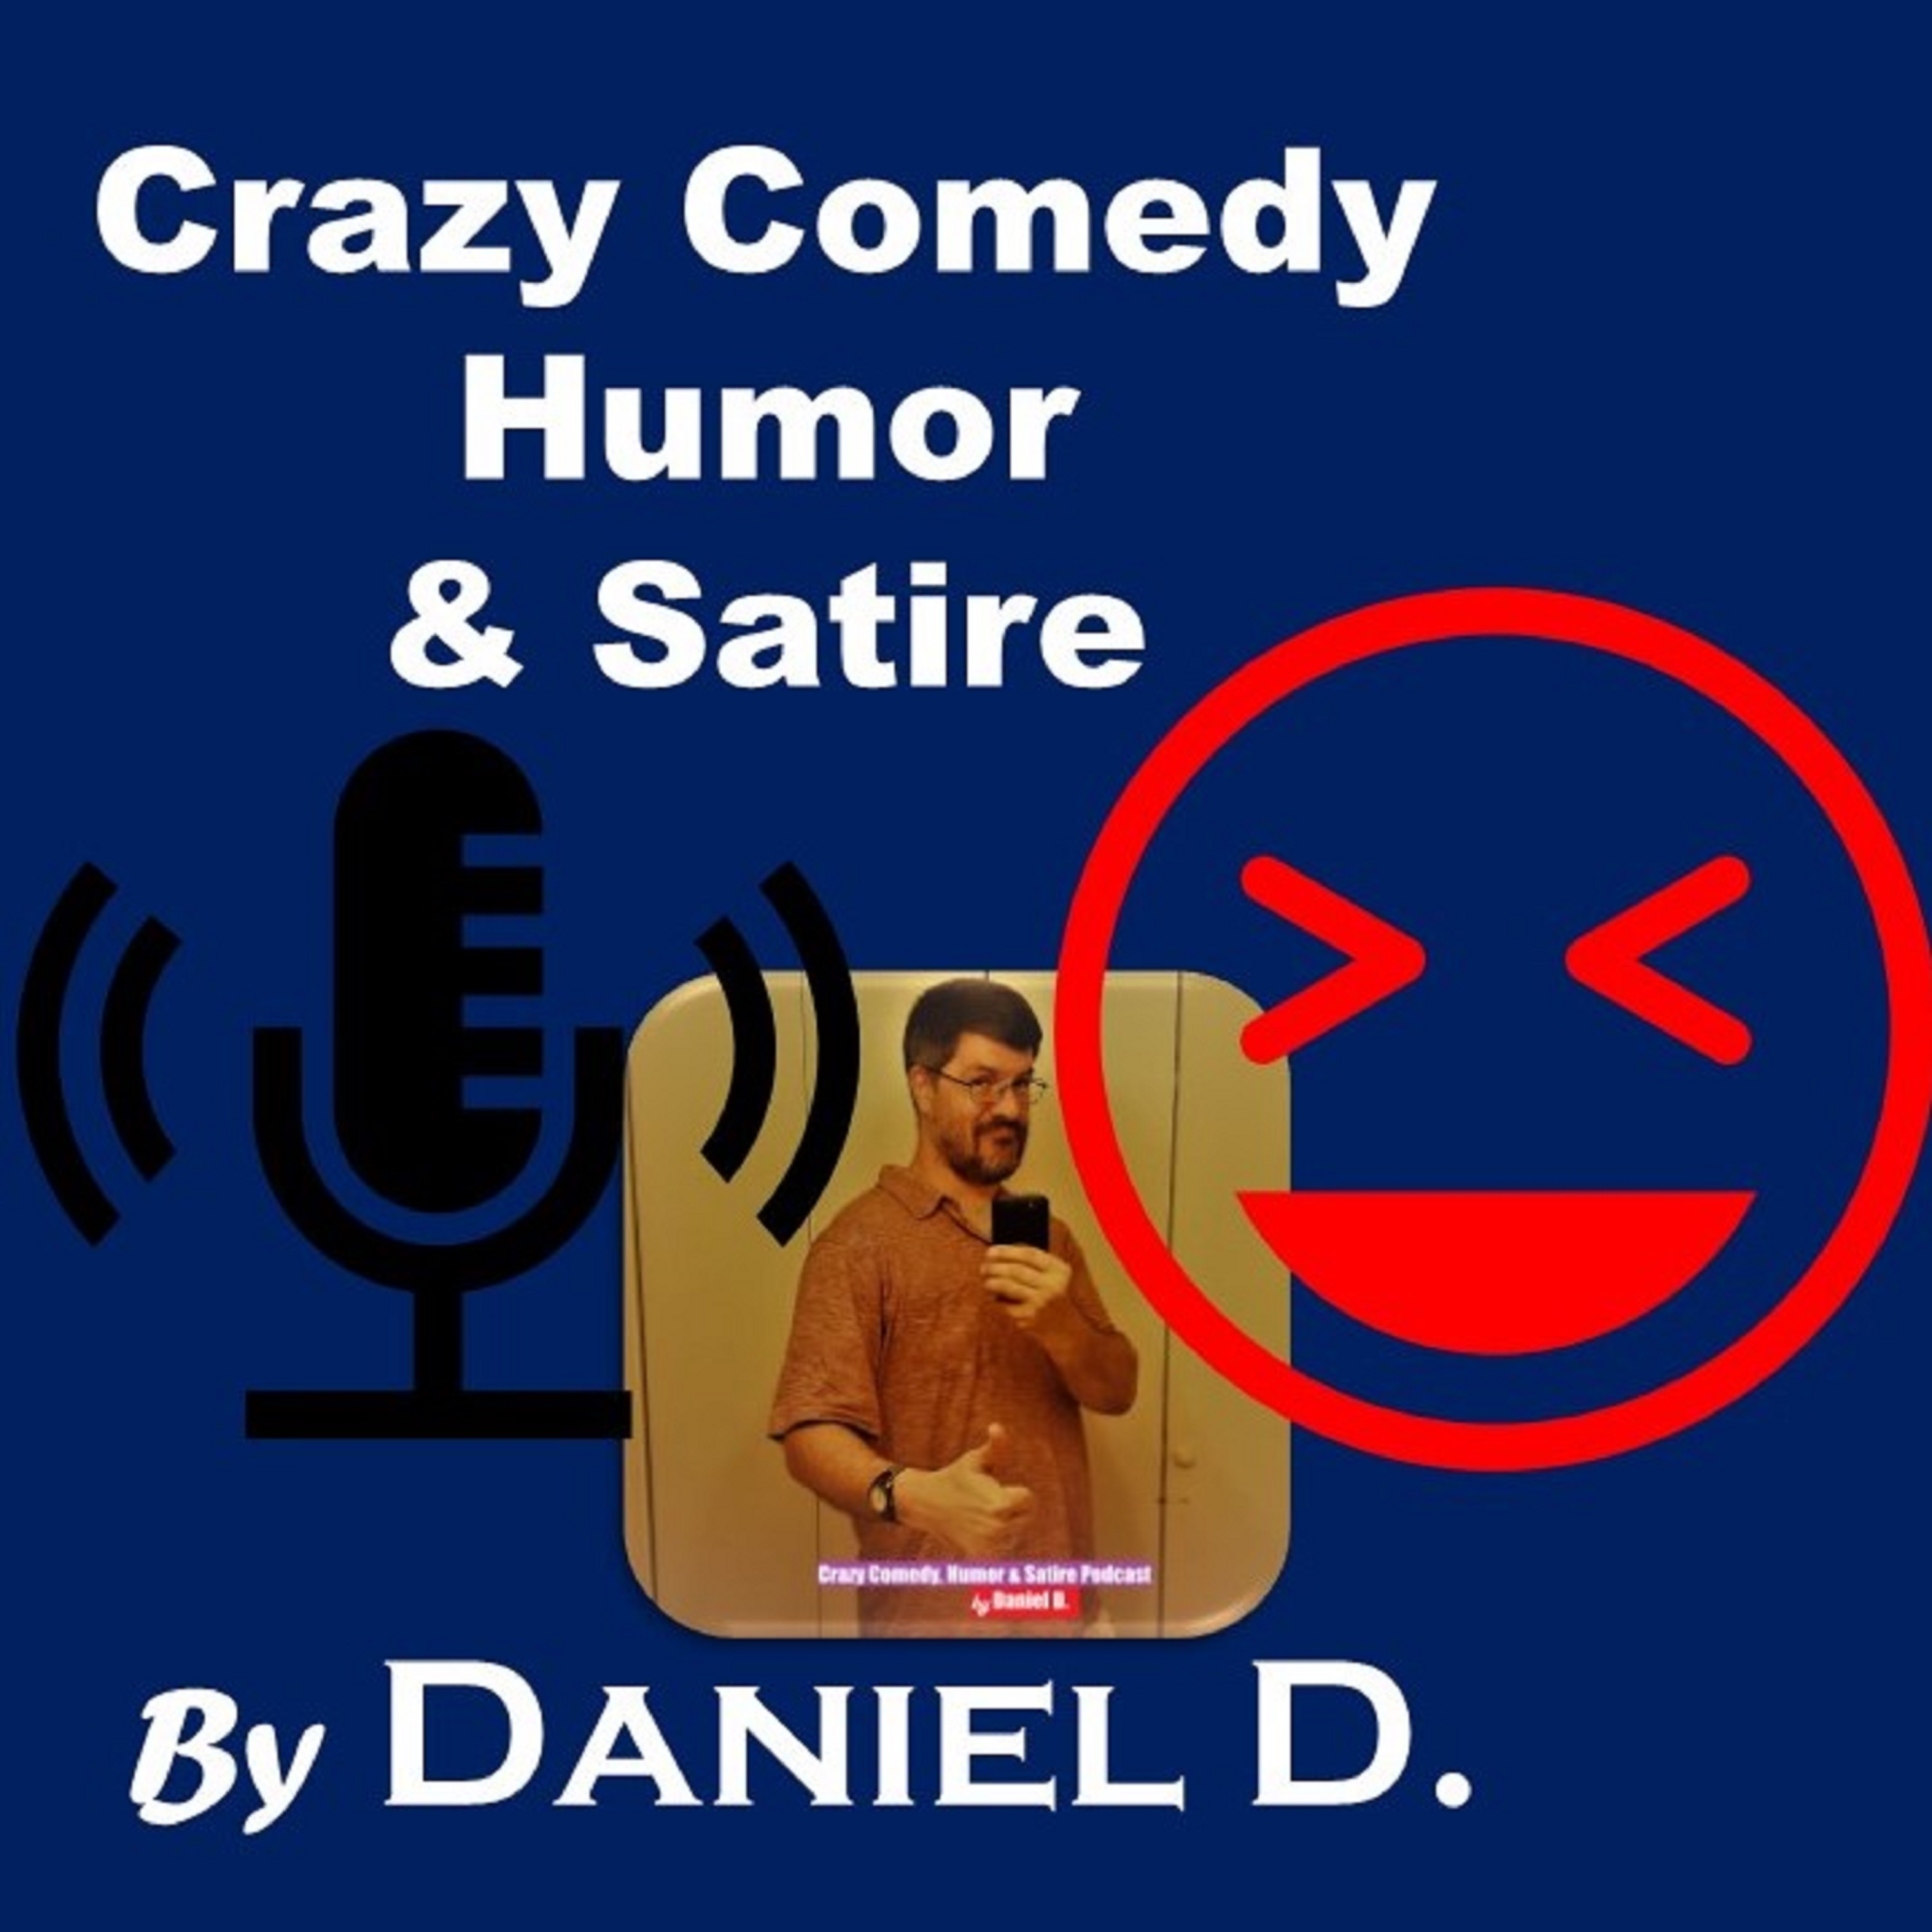 Artwork for Episode 3 of The Crazy Comedy, Humor, and Satire Podcast by Daniel D